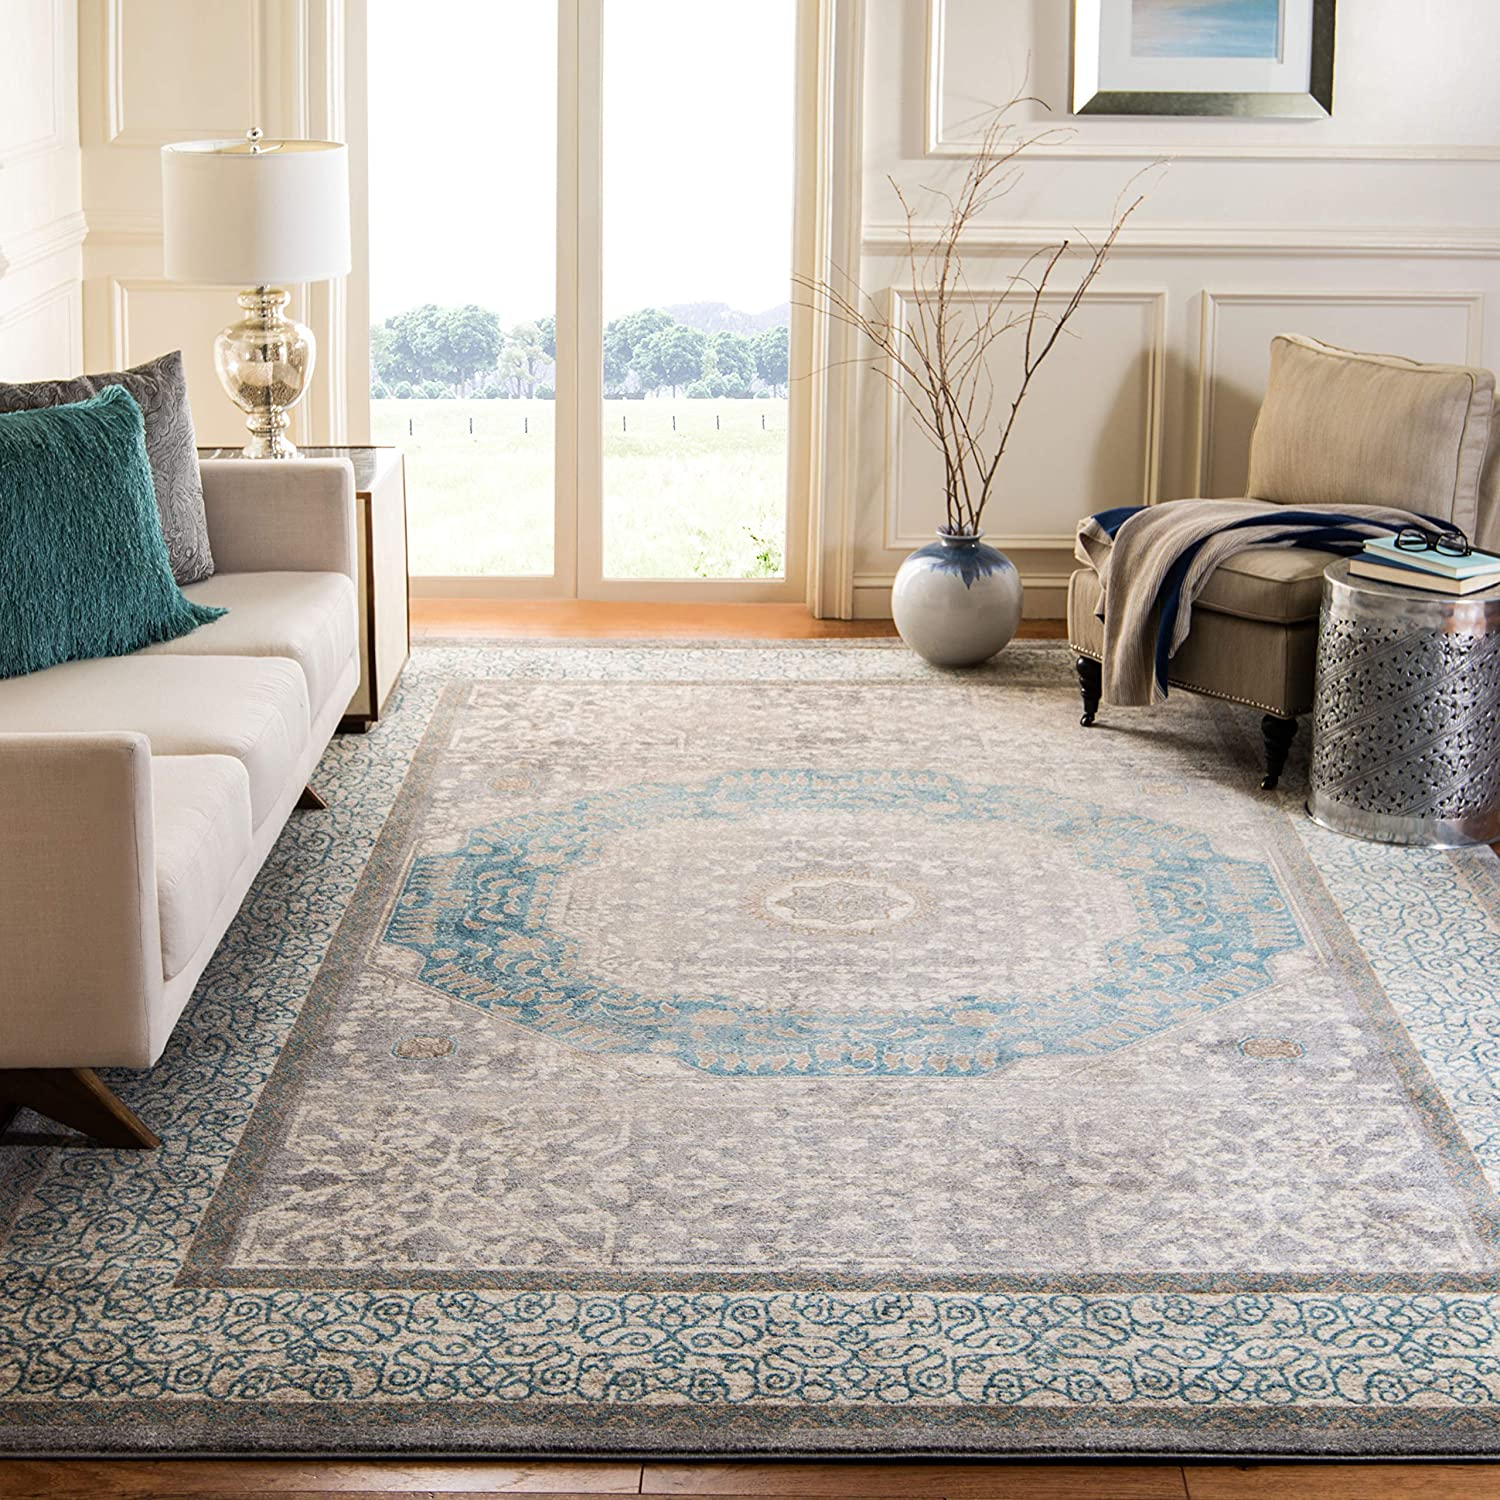 Safavieh Sofia Collection Sof365a Vintage Oriental Distressed Non Shedding Stain Resistant Living Room Bedroom Area Rug 9 X 12 Light Grey Blue Furniture Decor